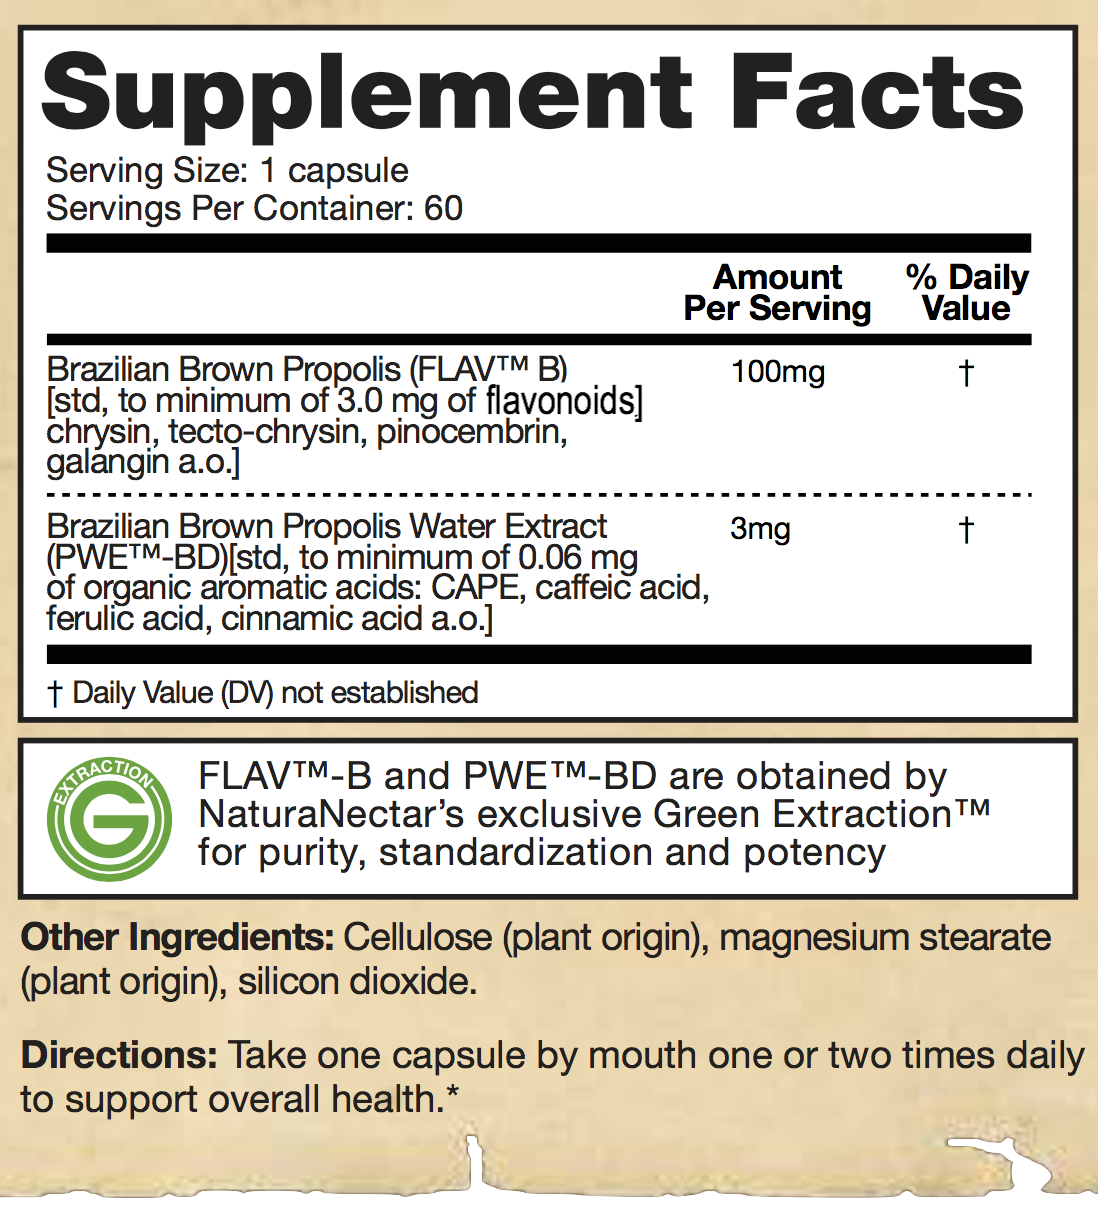 nn-brown-bee-propolis-supplement-facts-cropped.png